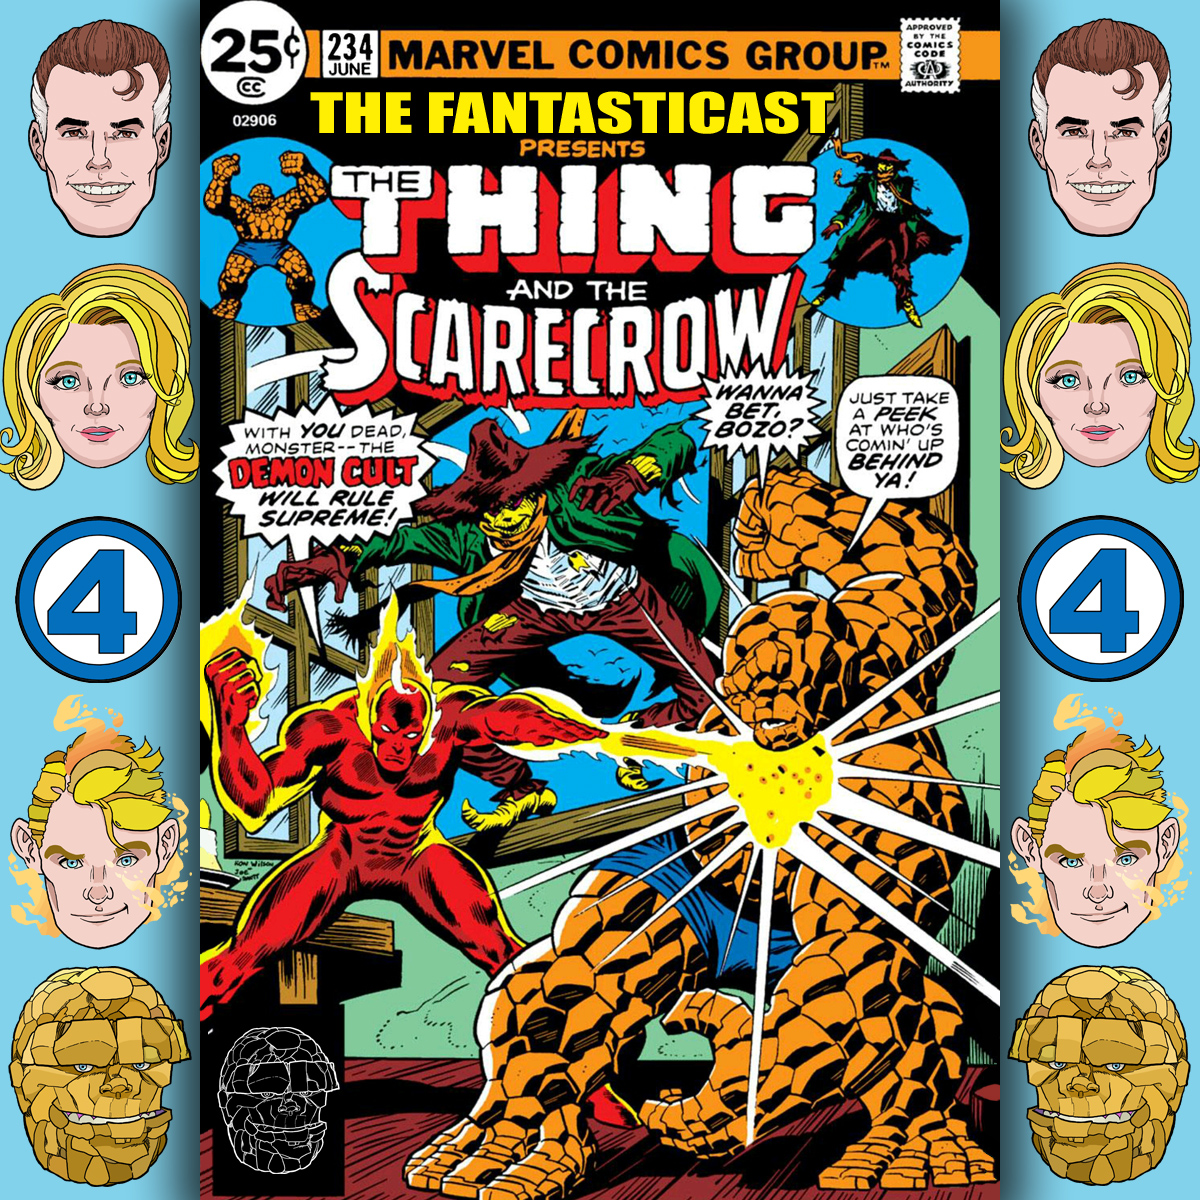 The Fantasticast Episode 234